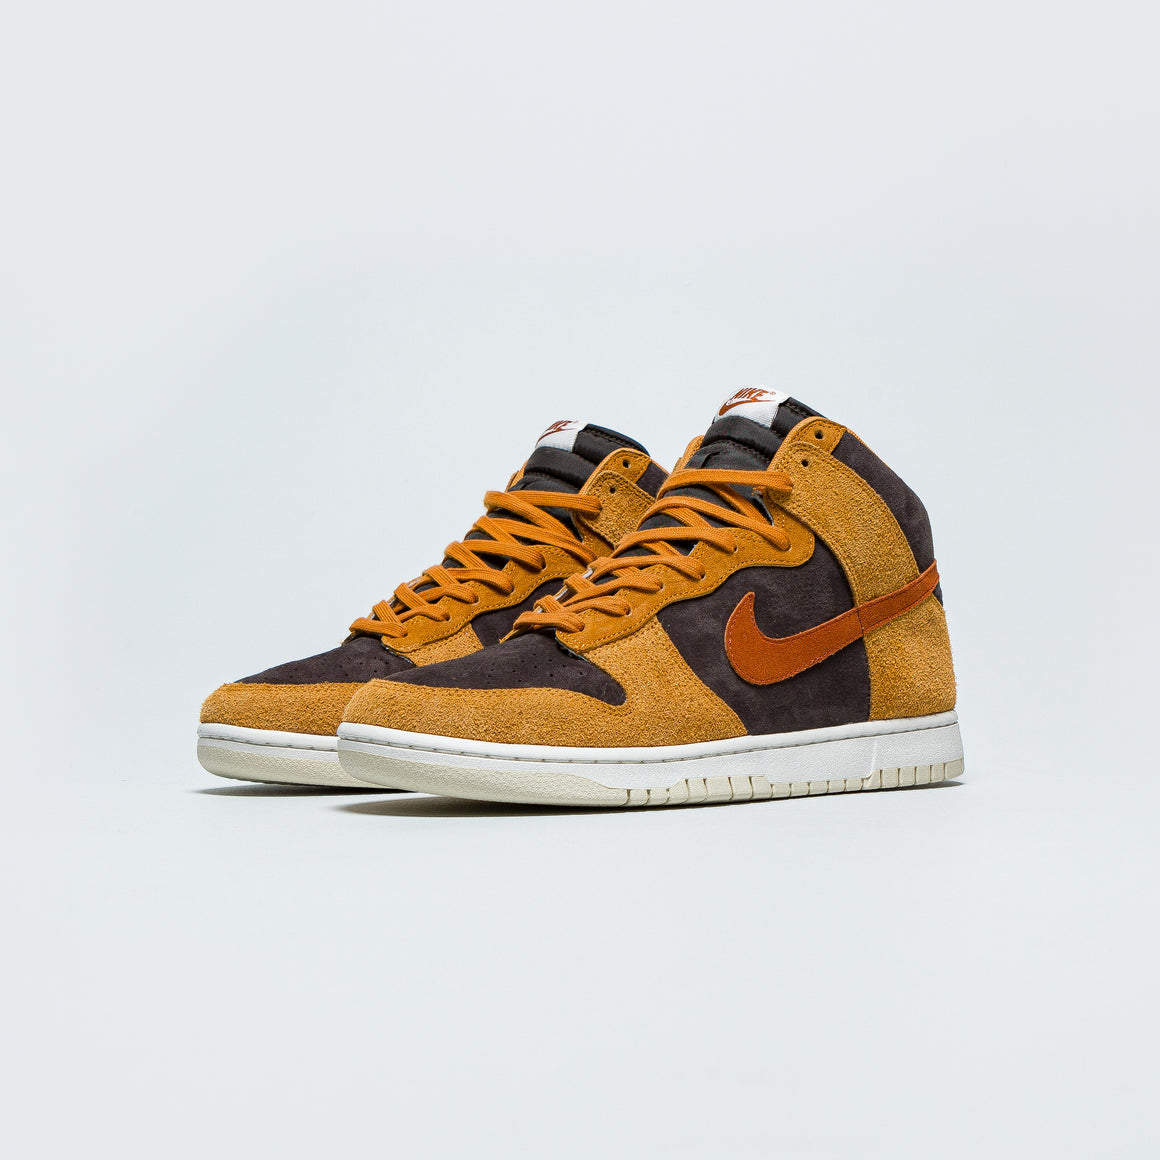 Nike - Dunk Hi Retro PRM - 'Dark Russet' - Up There